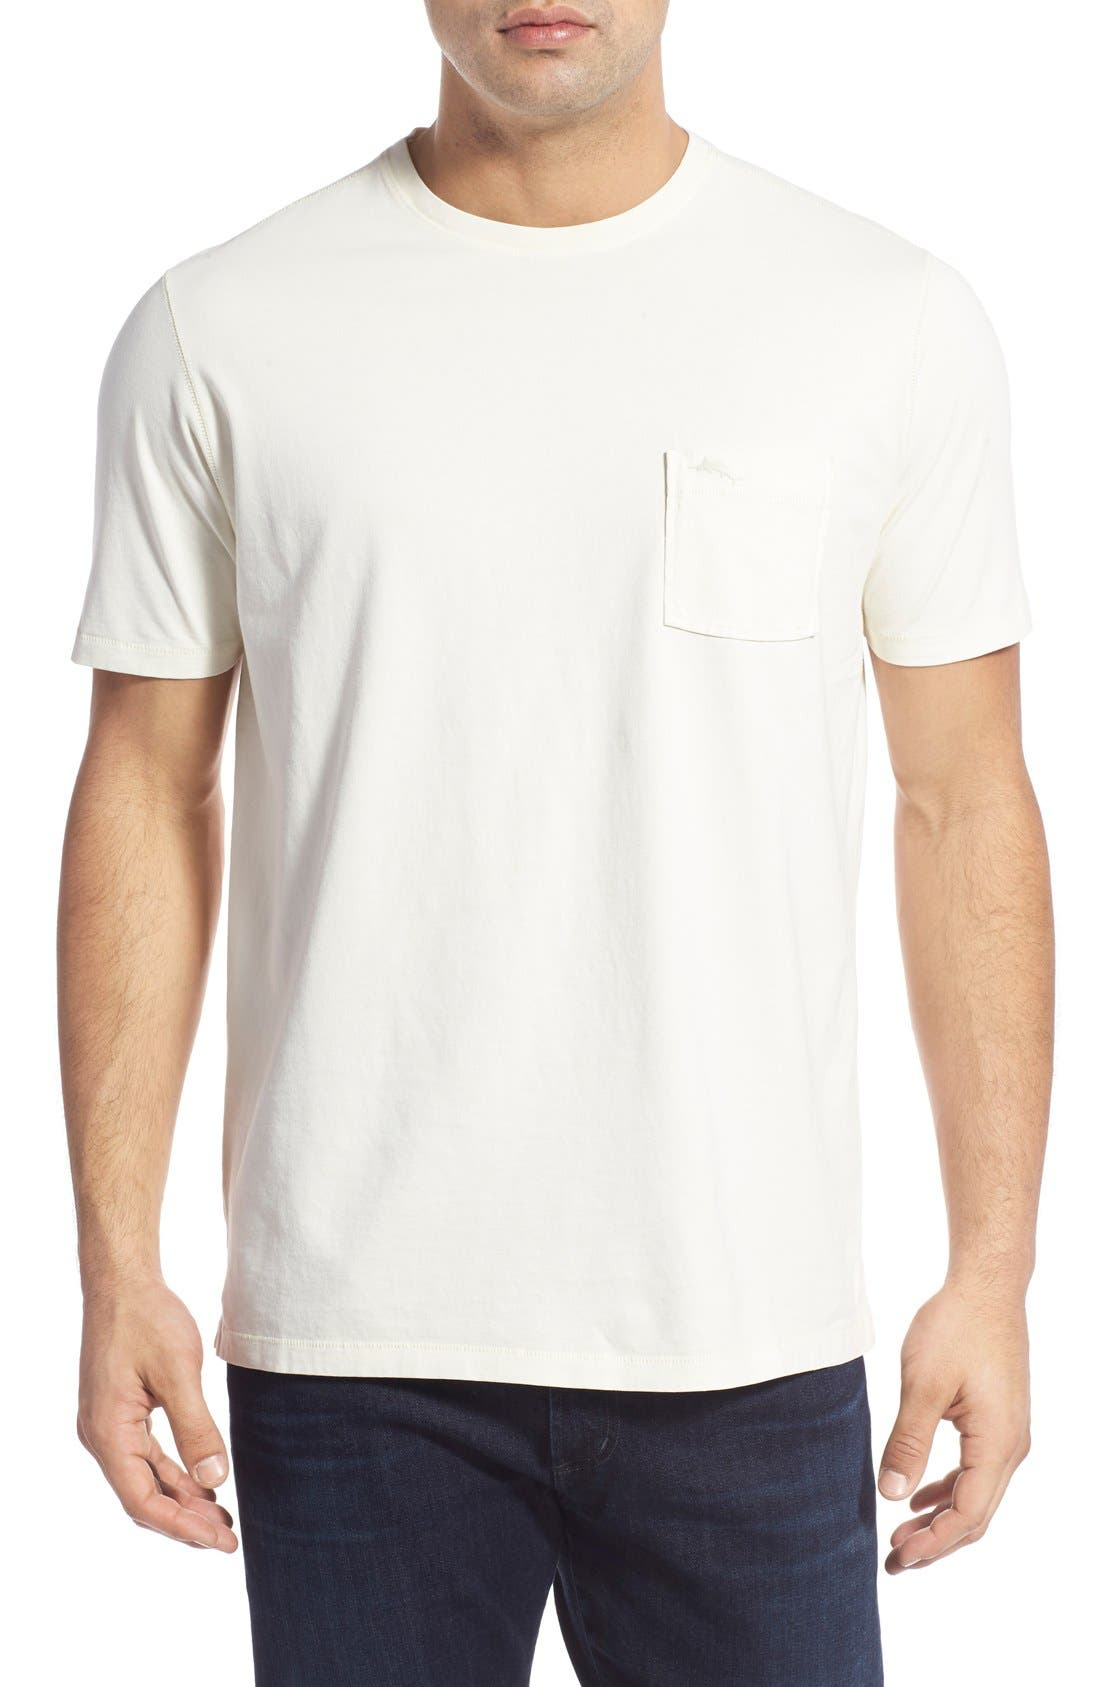 'New Bahama Reef' Island Modern Fit Pima Cotton Pocket T-Shirt,                         Main,                         color, 100